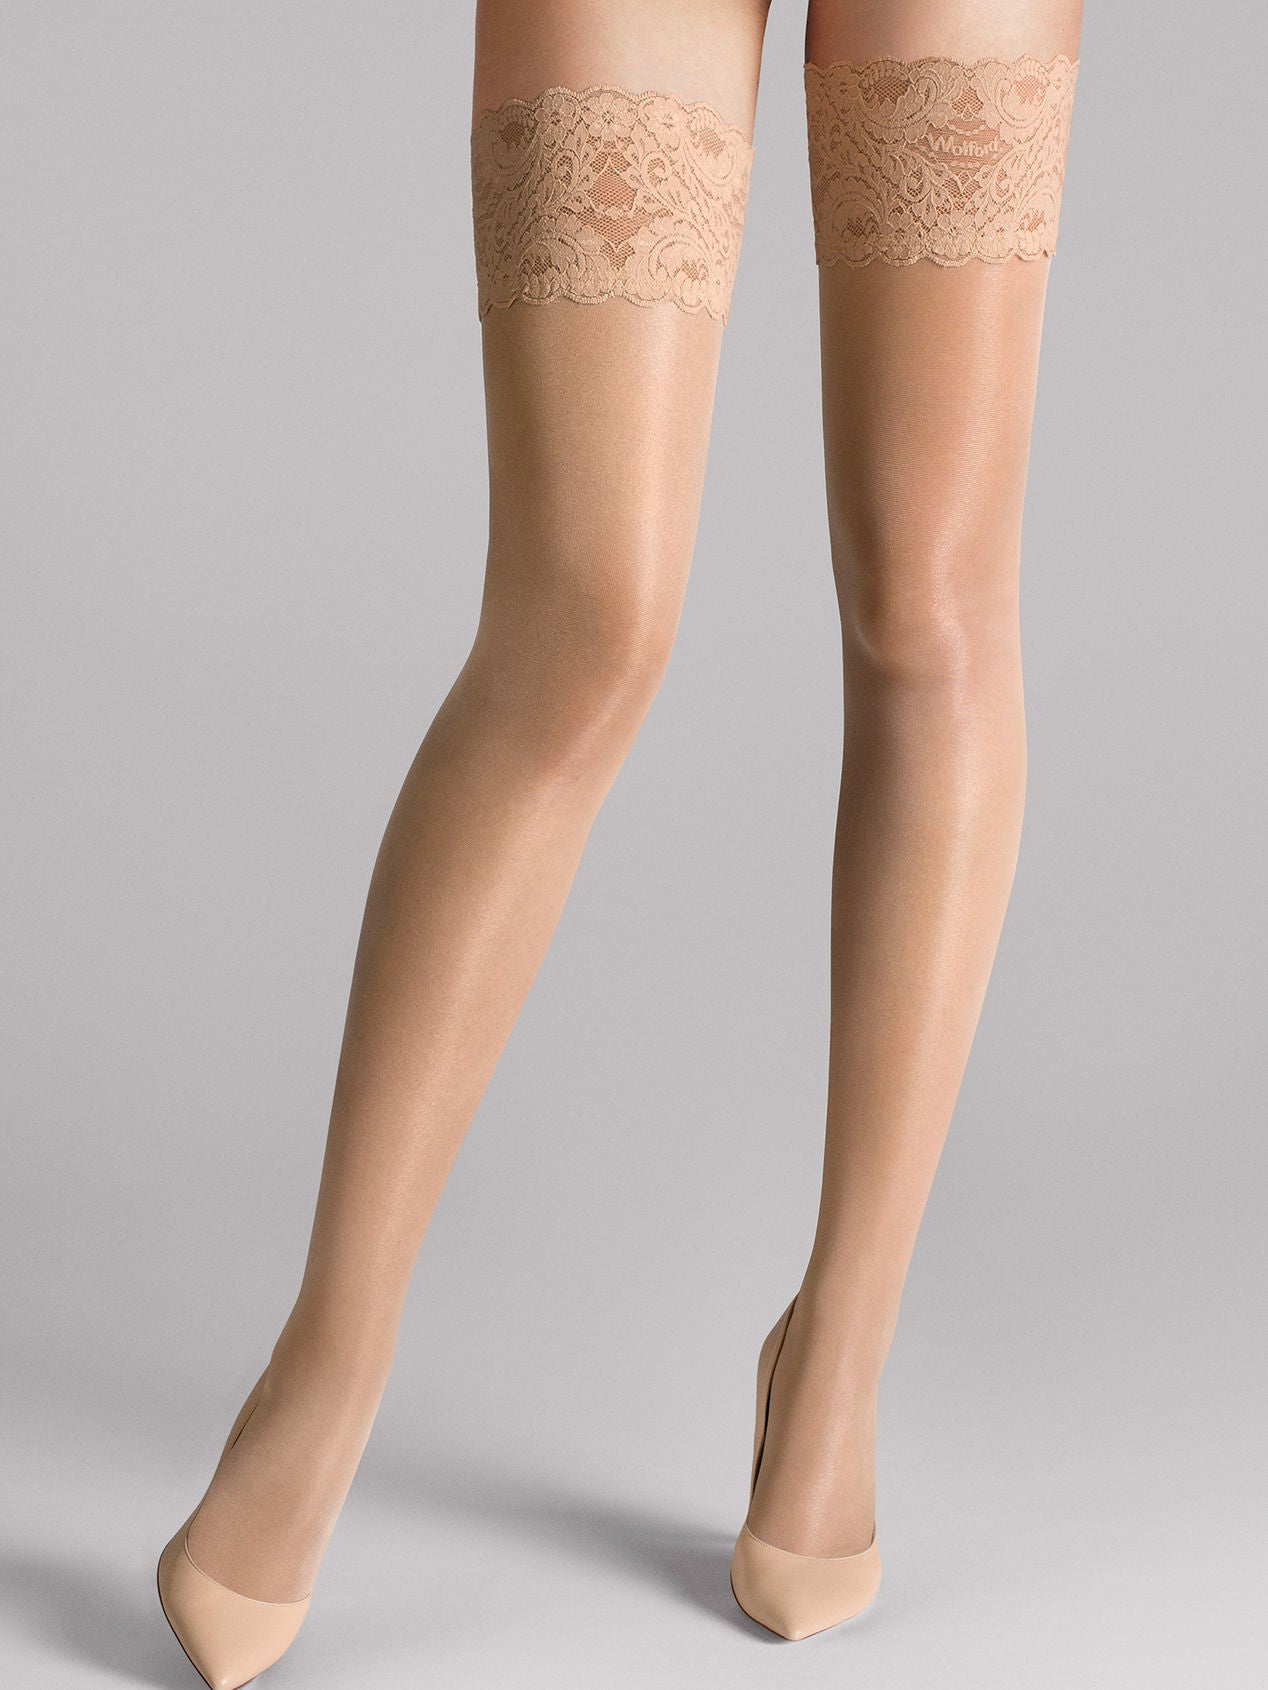 Wolford Satin Touch 20 Stay-Up Fairly Light